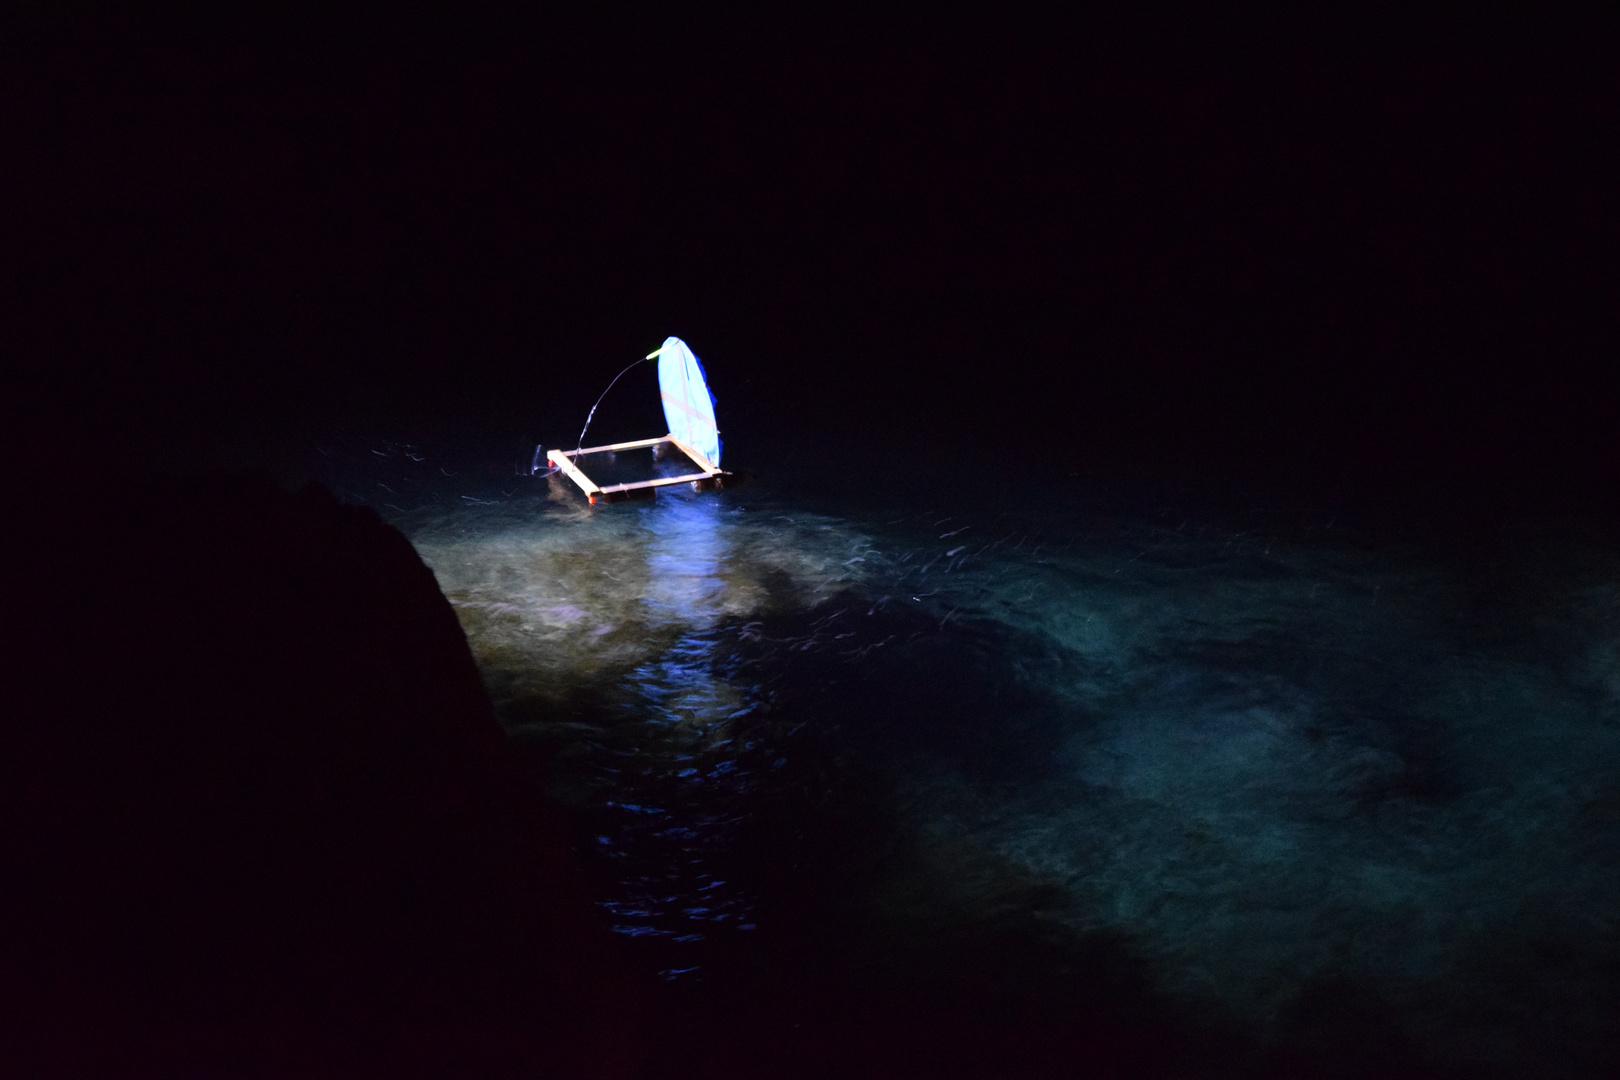 fishing with longline at night